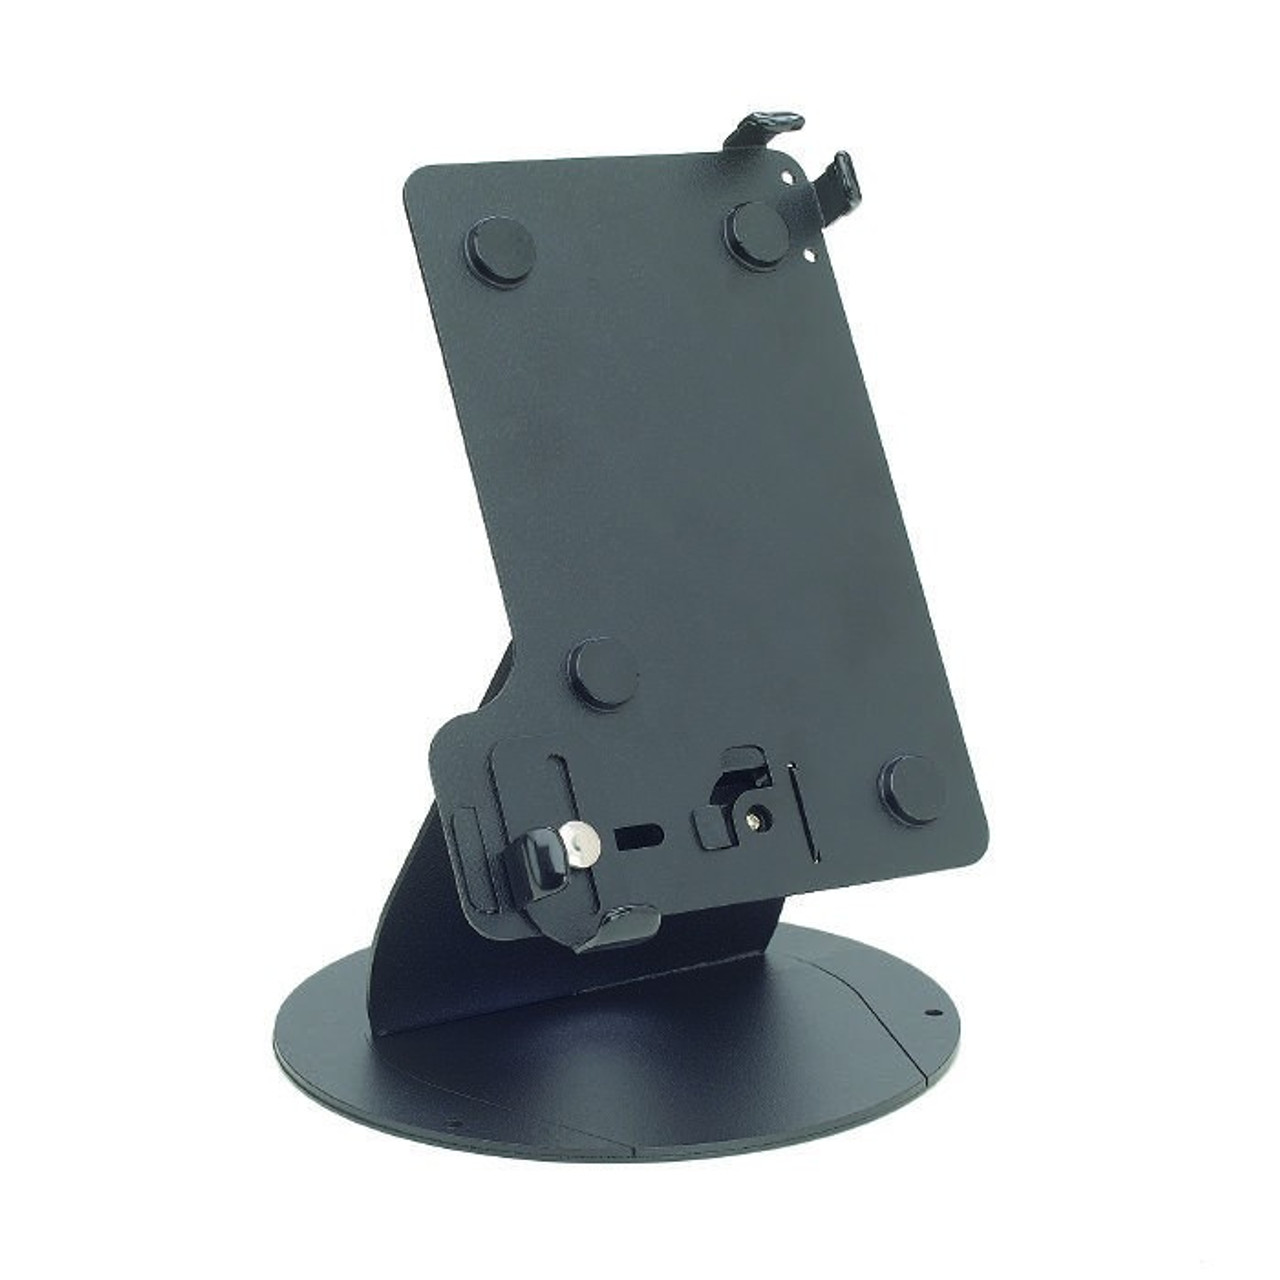 "MMF Lockable Tablet Stand for 9-10"" Tablets"